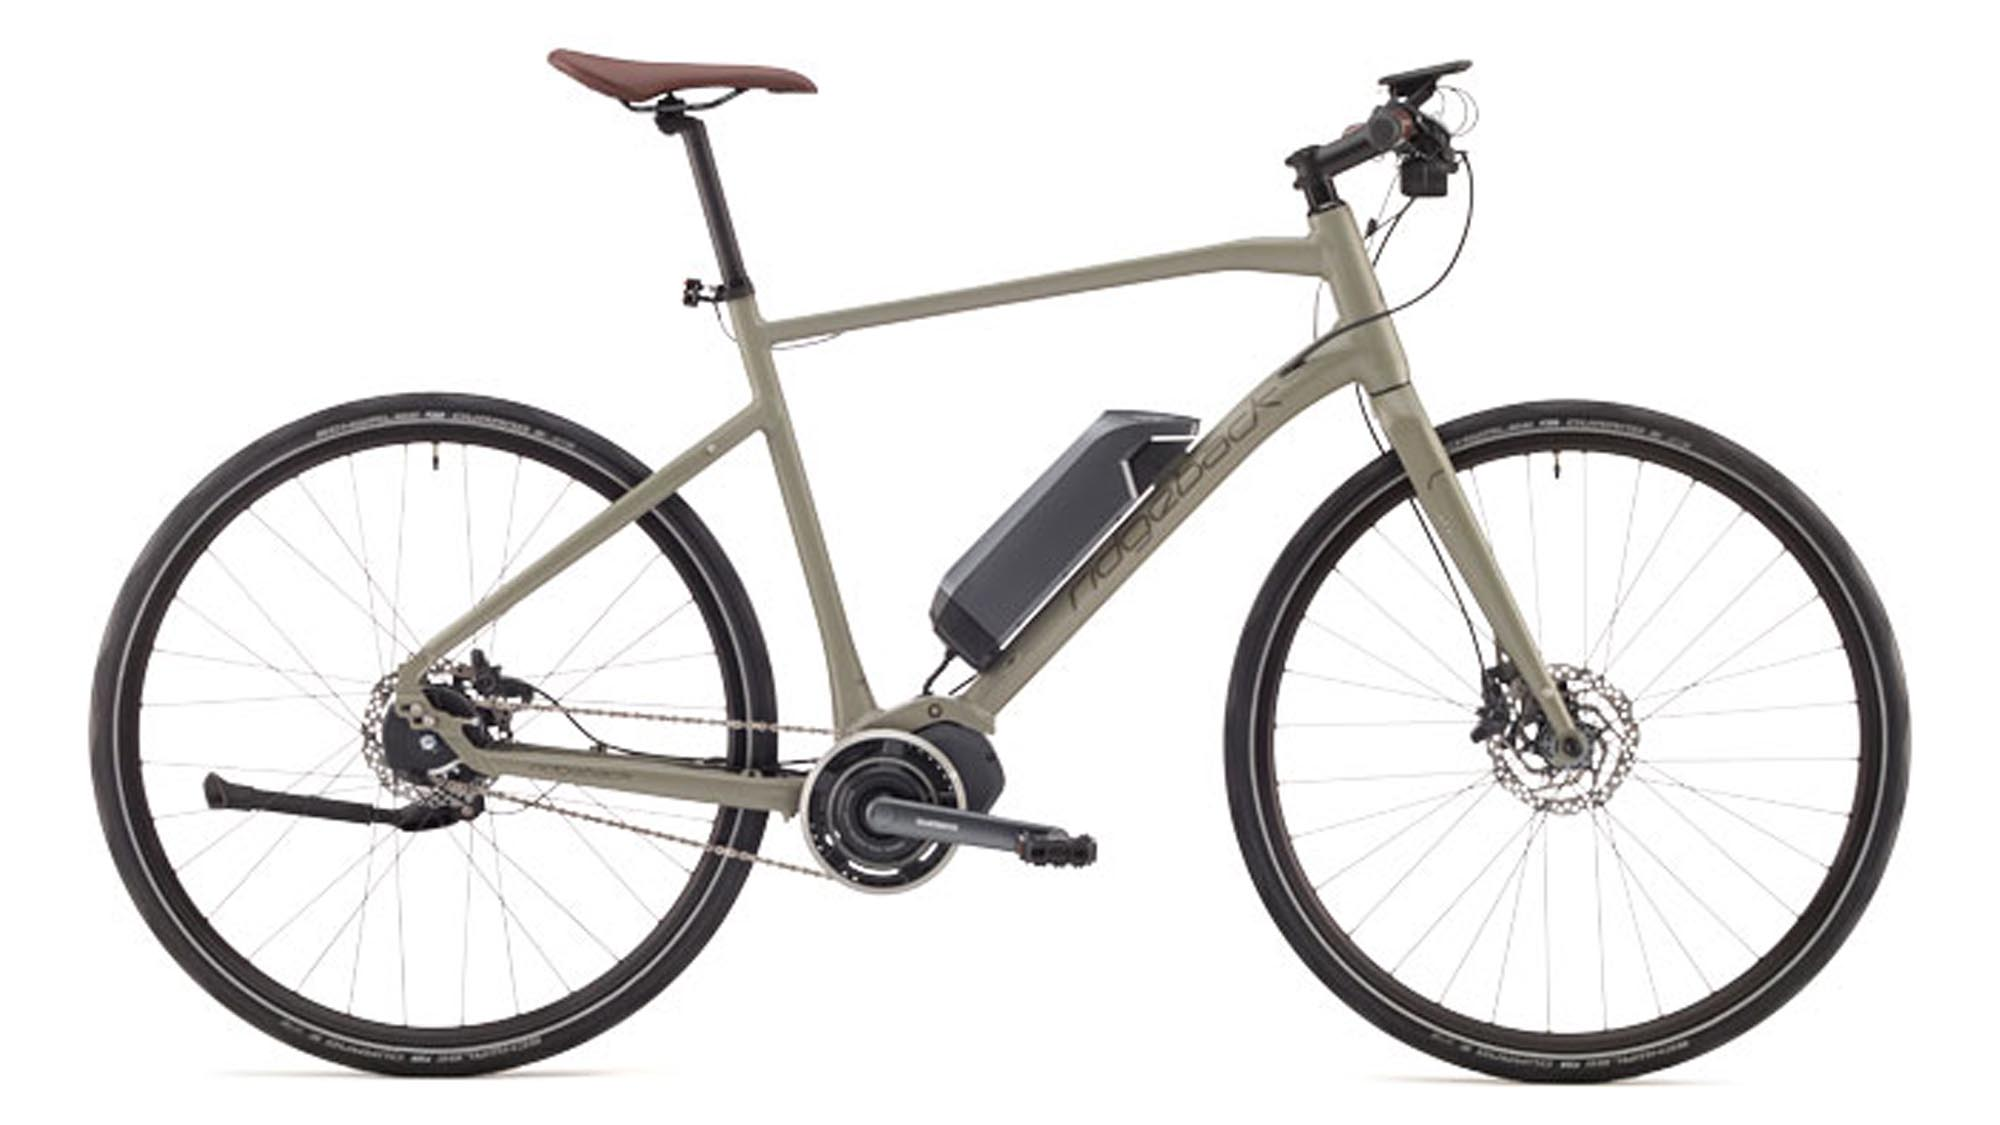 Best Electric Bike 2017 The Best Commuting Folding Mtb And Road